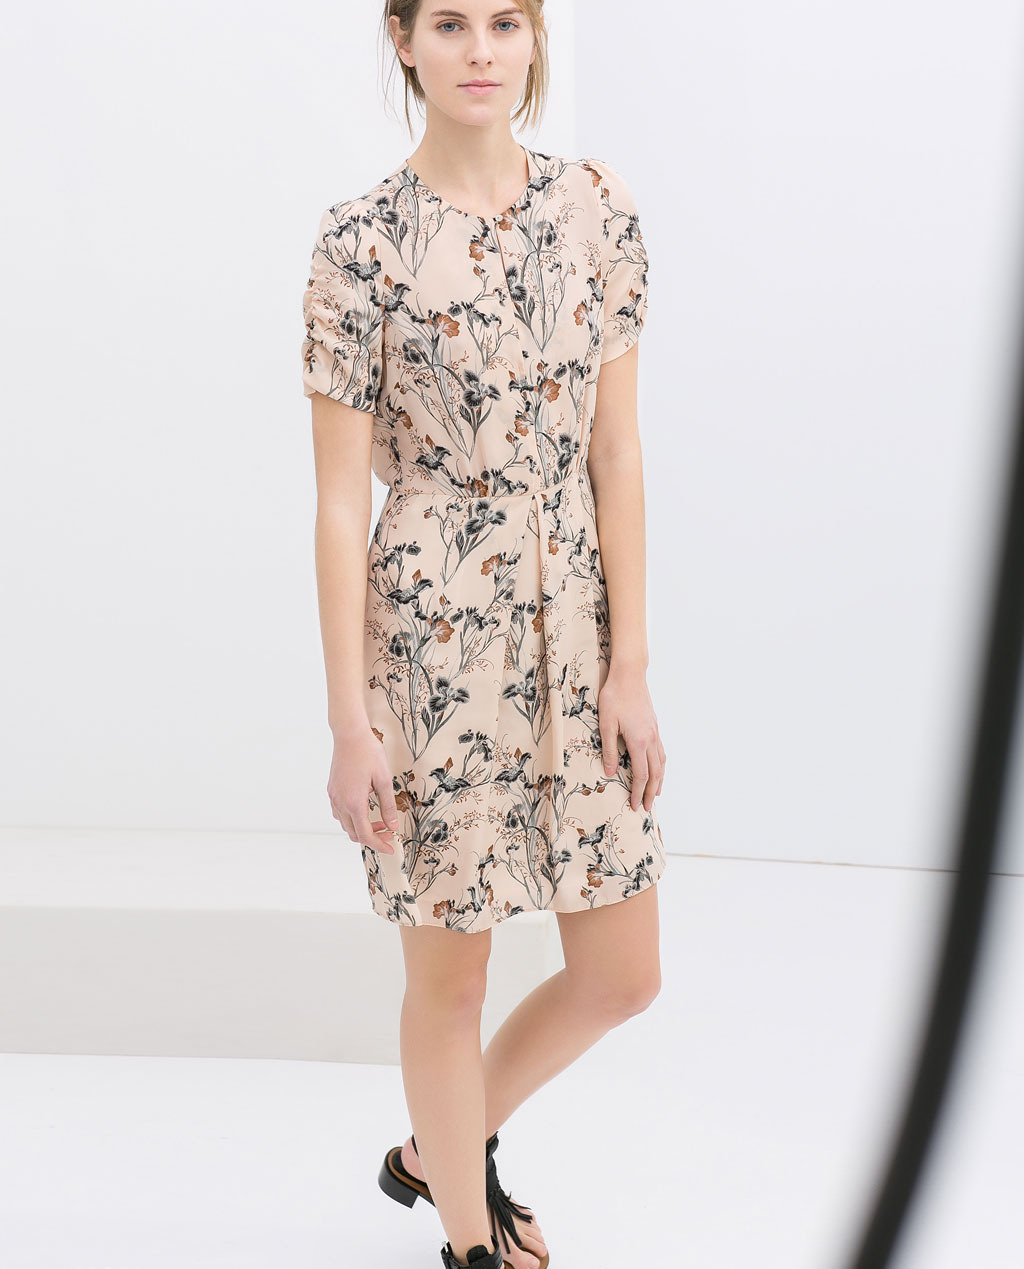 Printed Dress - style: shift; neckline: round neck; predominant colour: nude; secondary colour: charcoal; occasions: casual, holiday, creative work; length: just above the knee; fit: body skimming; fibres: polyester/polyamide - 100%; sleeve length: short sleeve; sleeve style: standard; pattern type: fabric; pattern size: standard; pattern: florals; texture group: other - light to midweight; season: s/s 2014